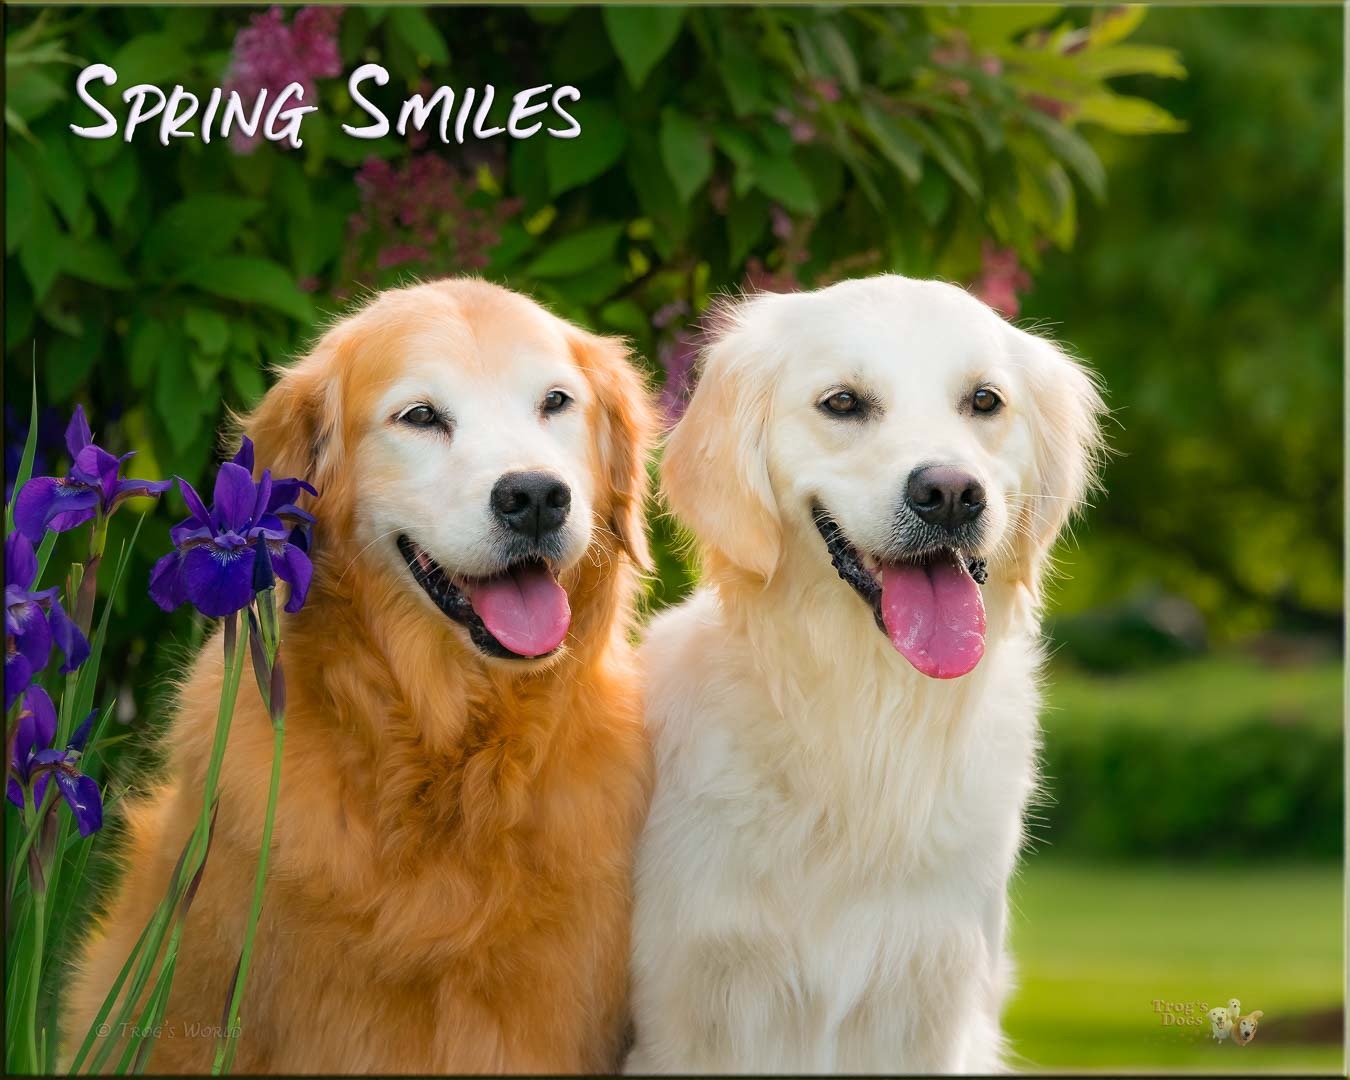 Two Golden Retrievers on a spring day